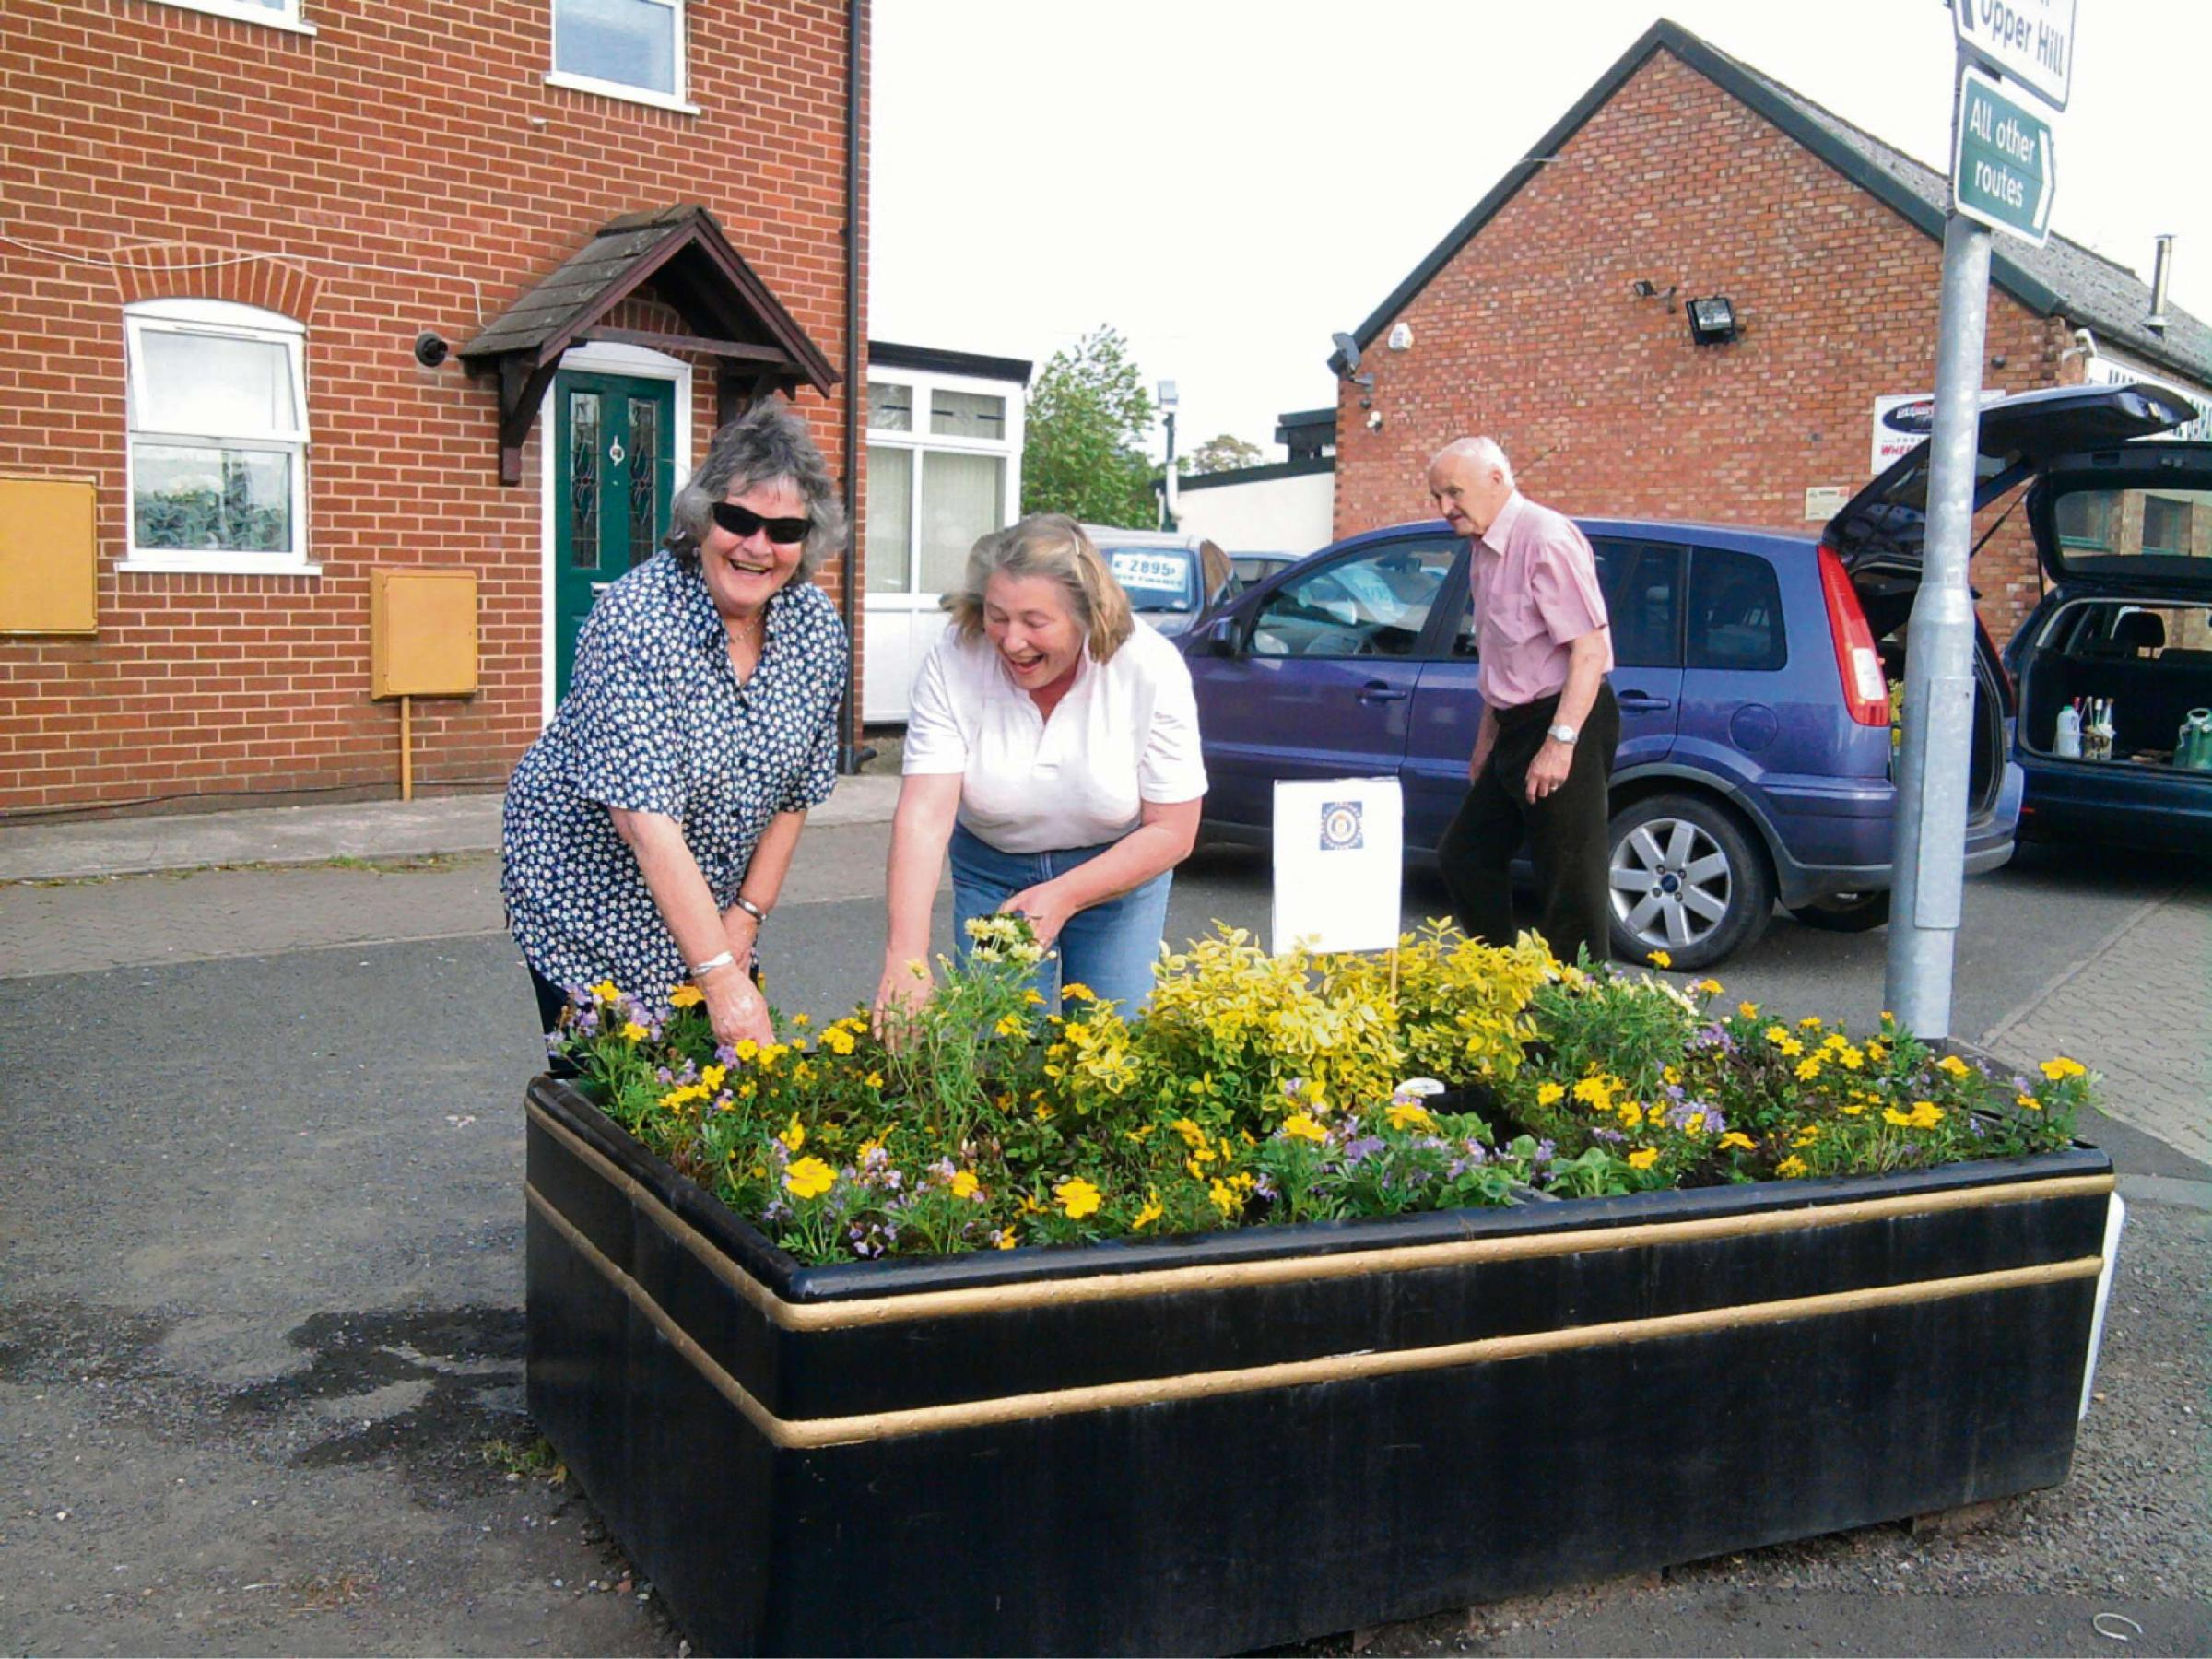 Photographed working on one of the planters is left to right Terry Mackay and Penny Usher.